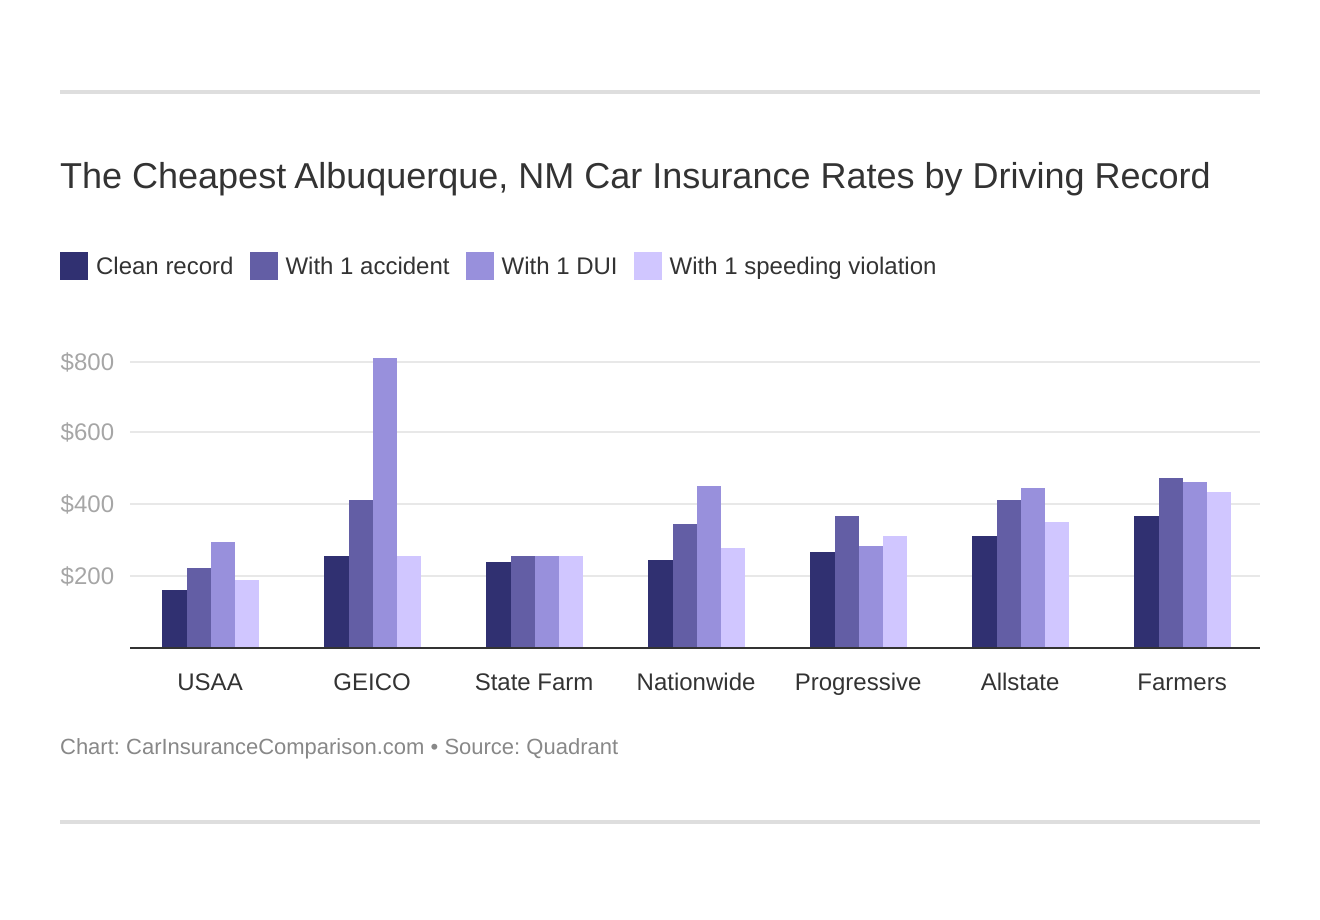 The Cheapest Albuquerque, NM Car Insurance Rates by Driving Record